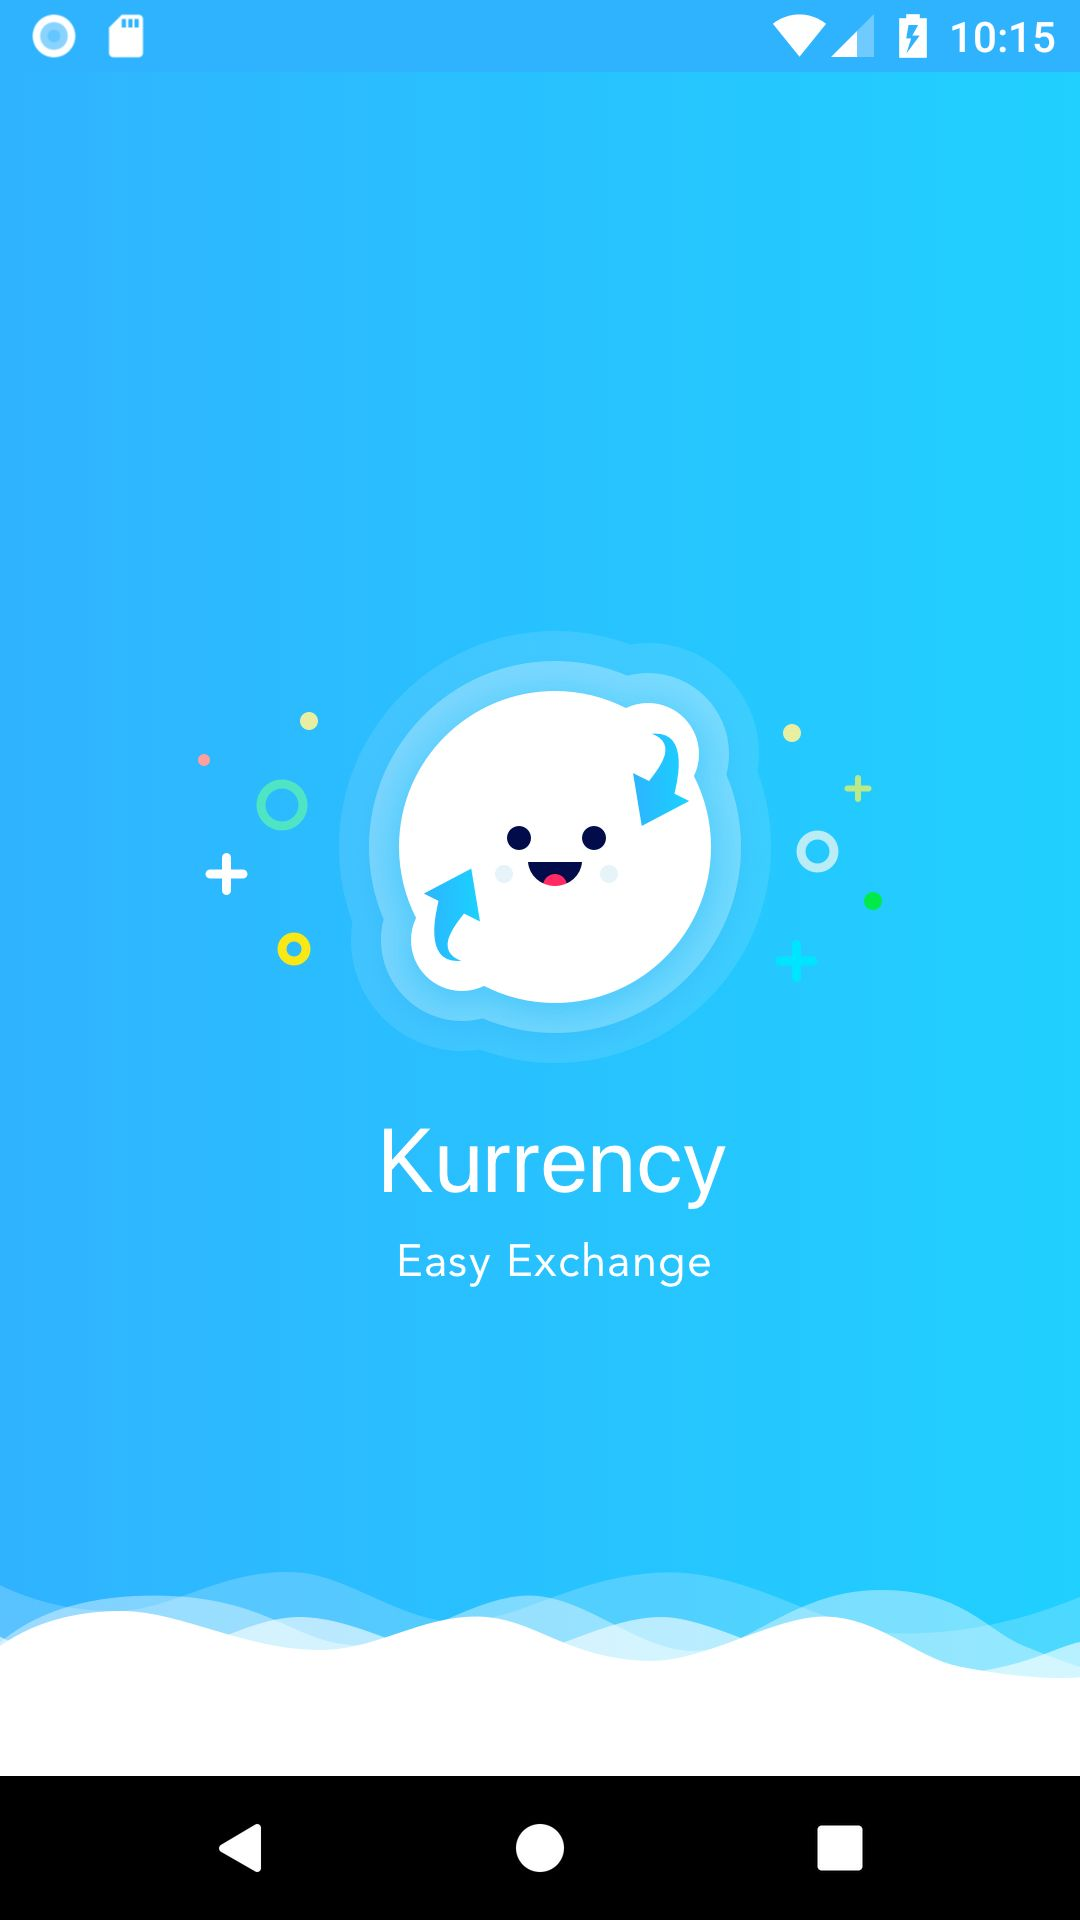 Kurrency - Currency Converter Android Template Screenshot 1